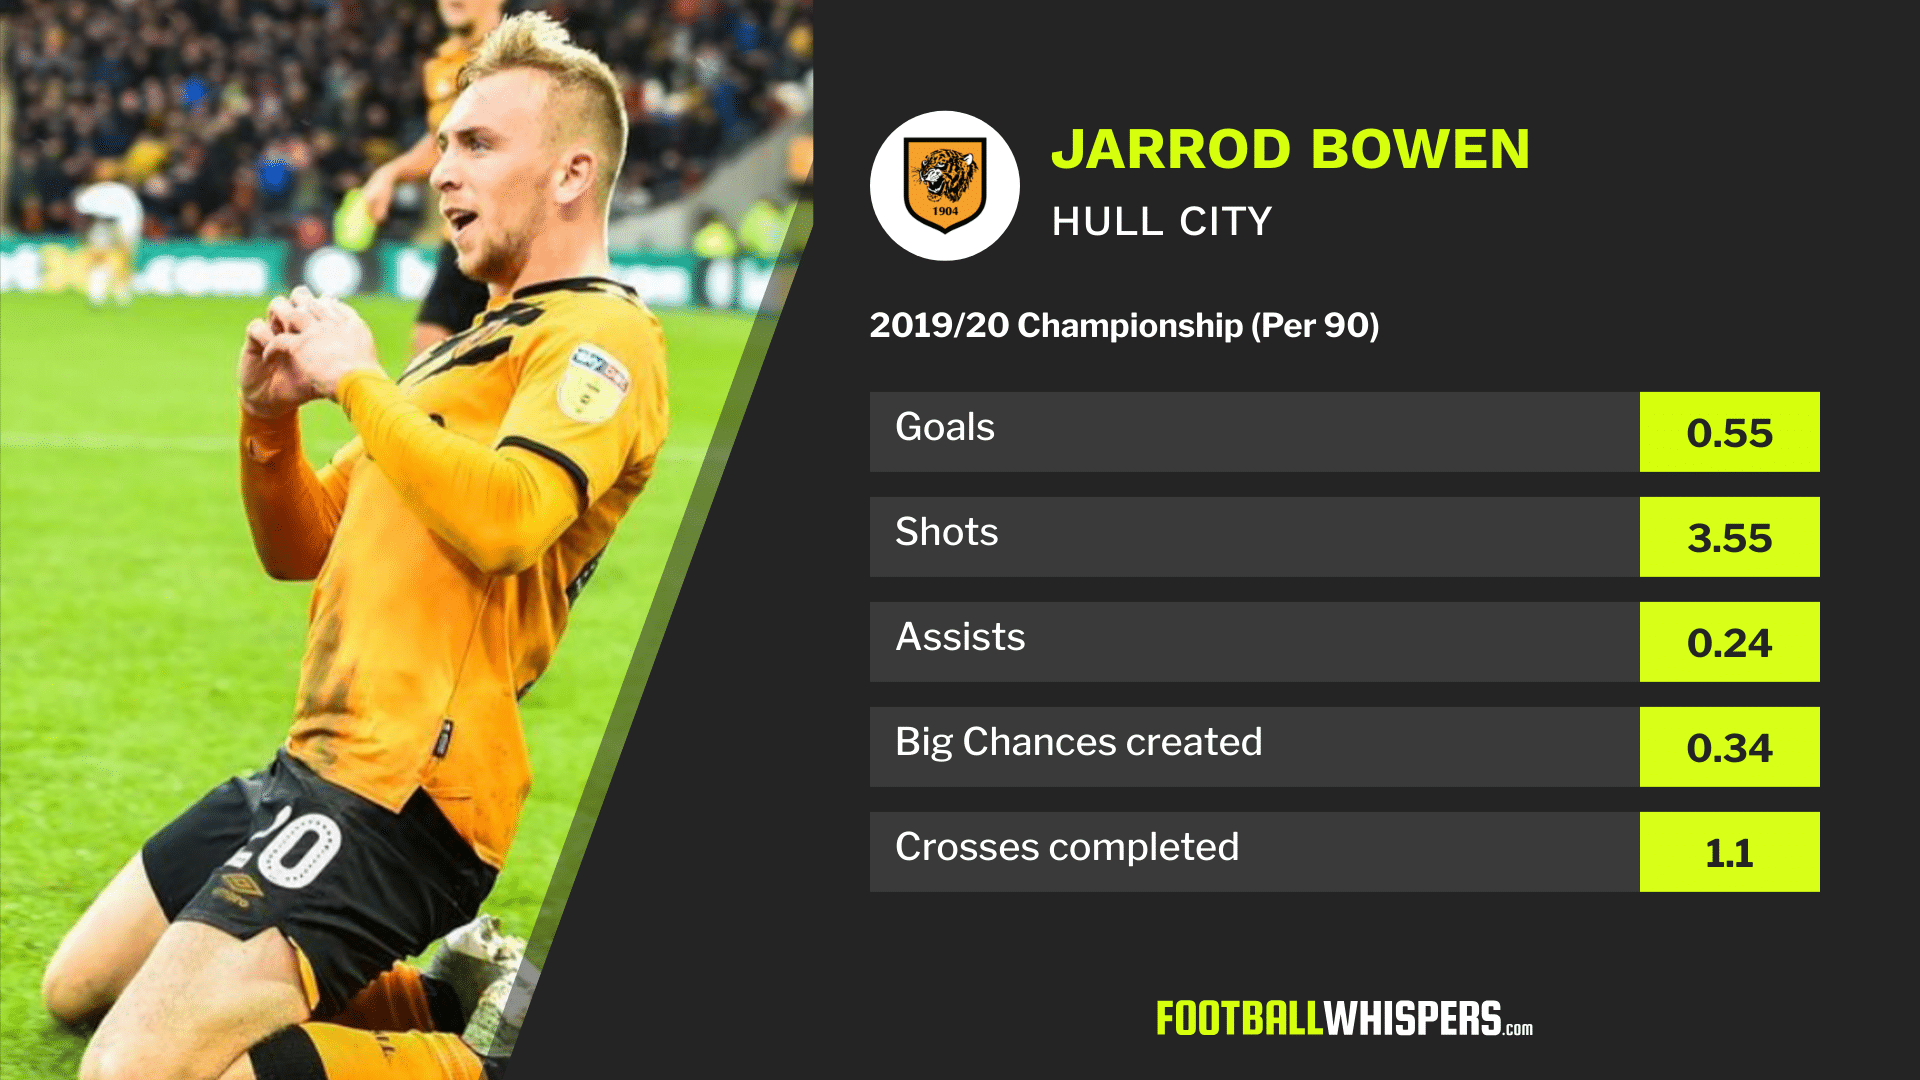 2019/20 Championship stats for Hull City forward Jarrod Bowen